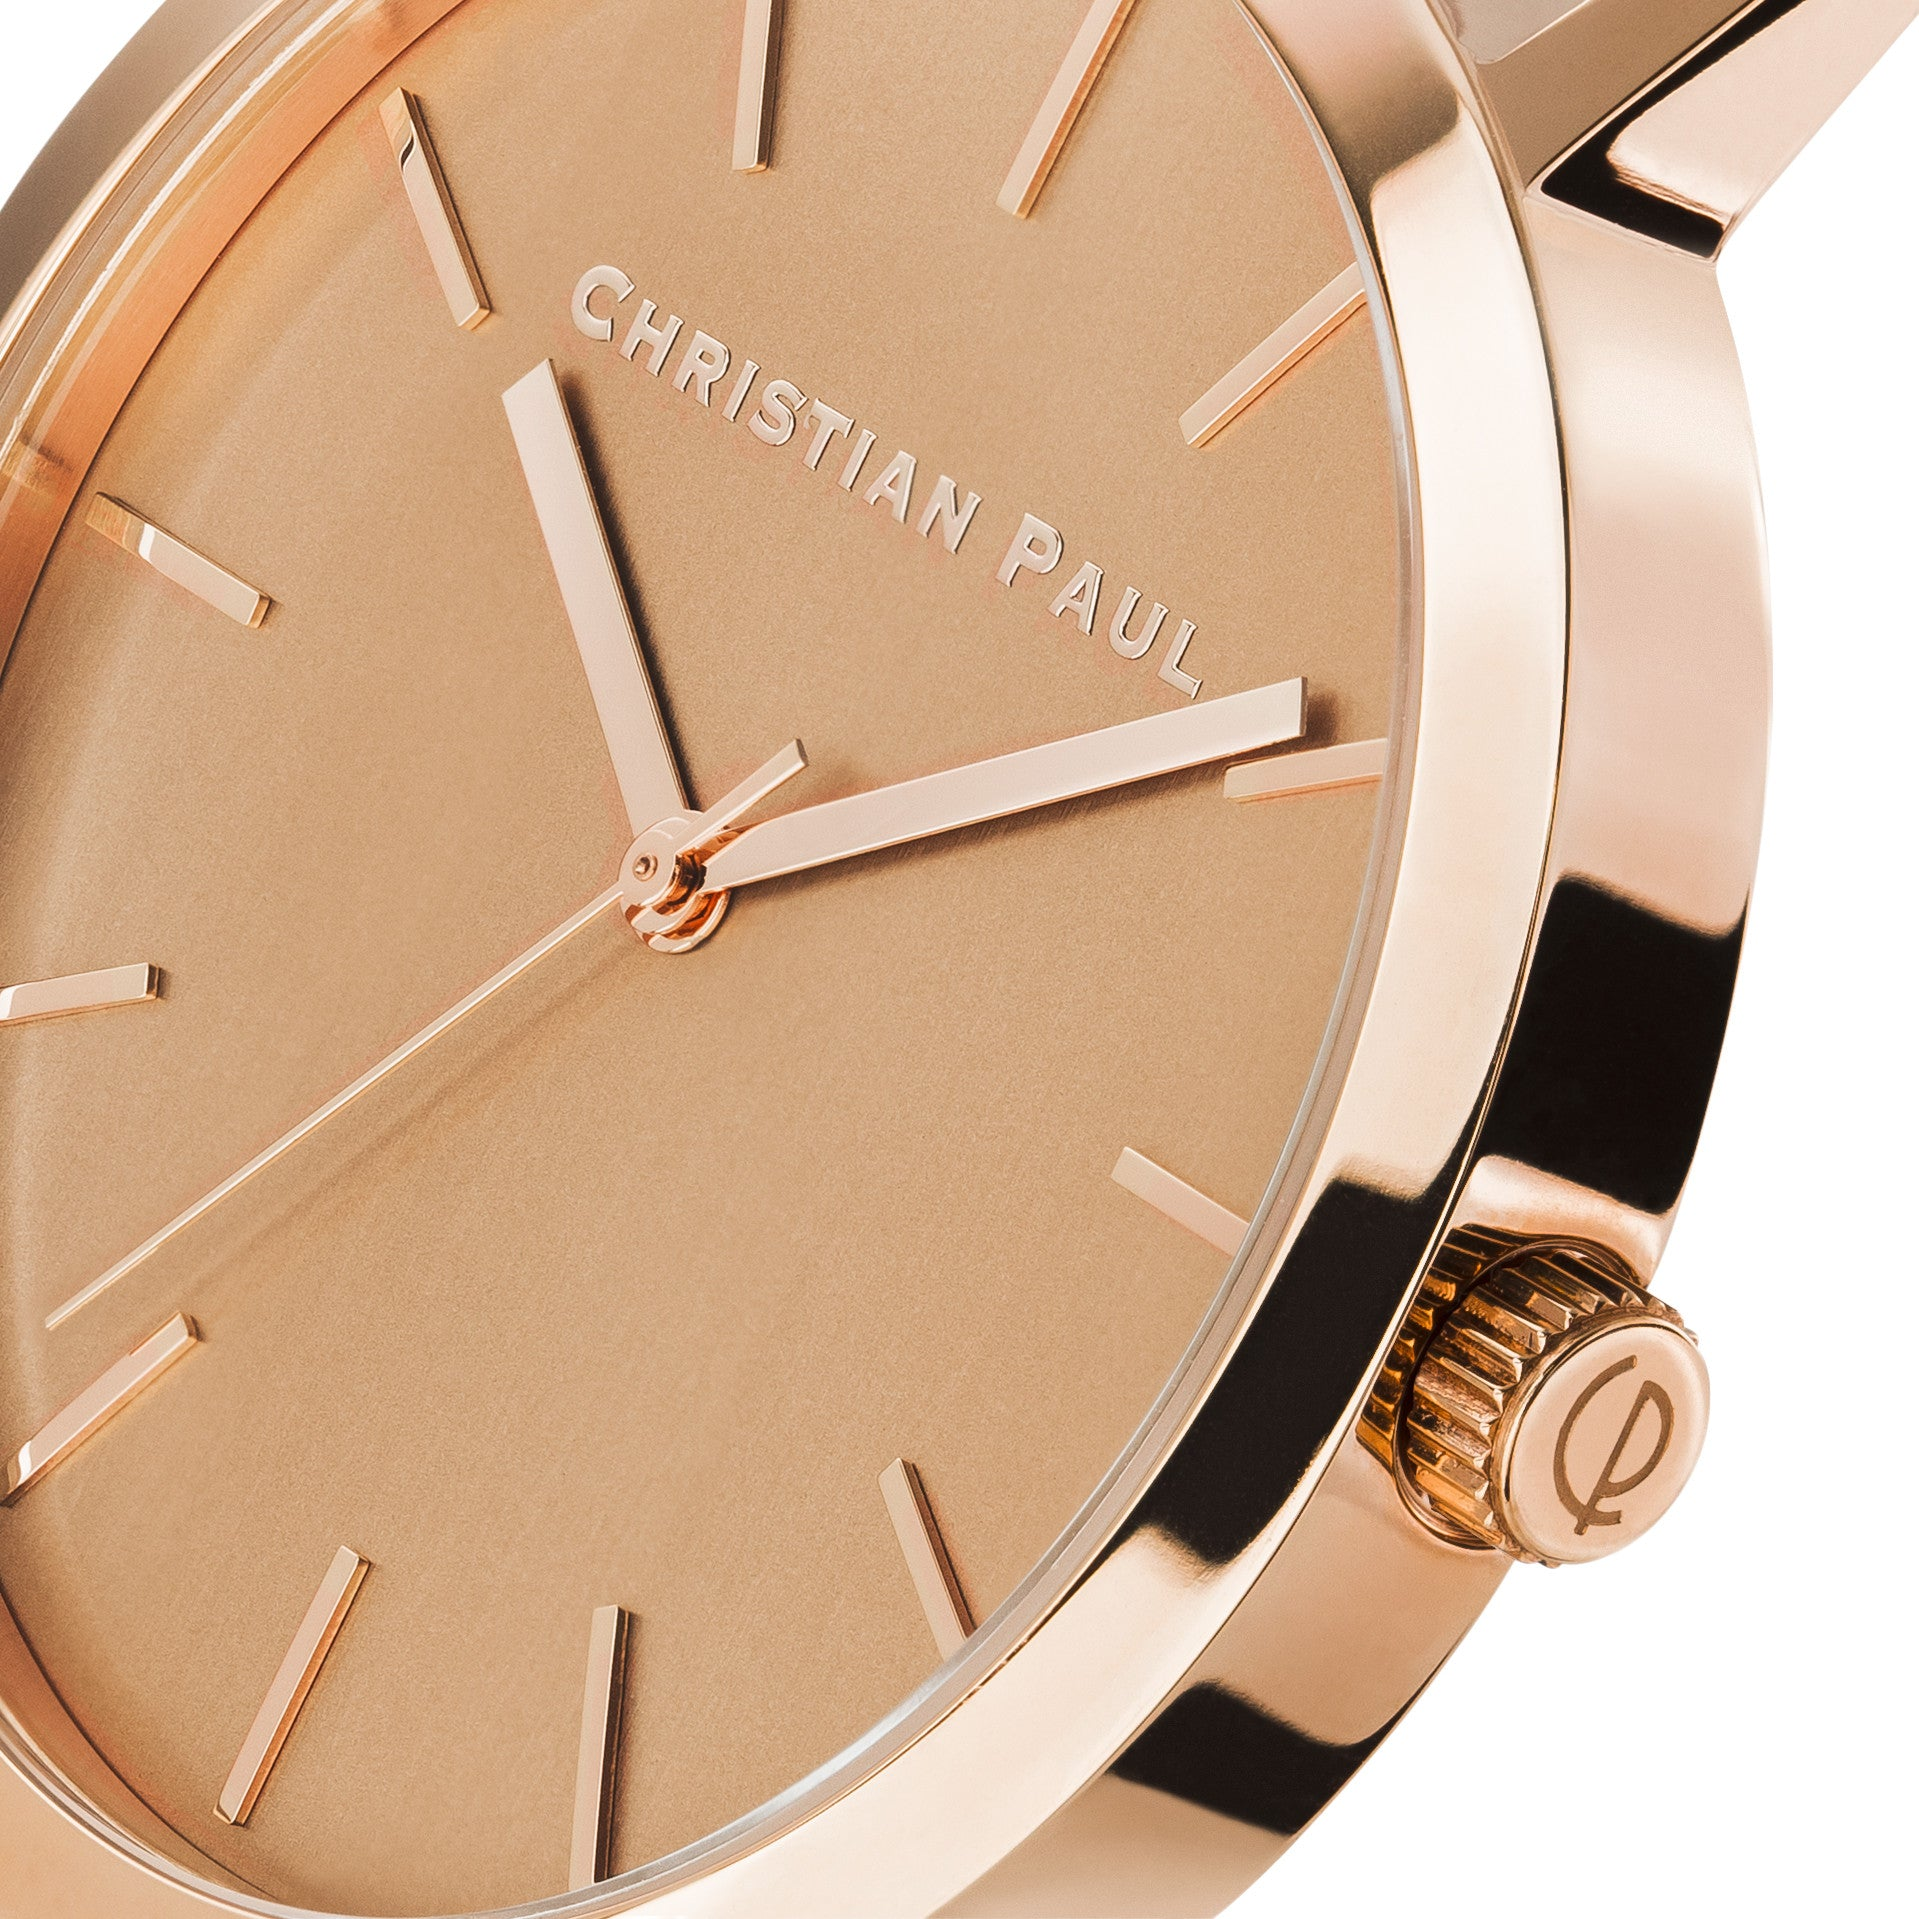 Christian Paul Watch Perth Rose Gold 43mm 101.Watch Store USA